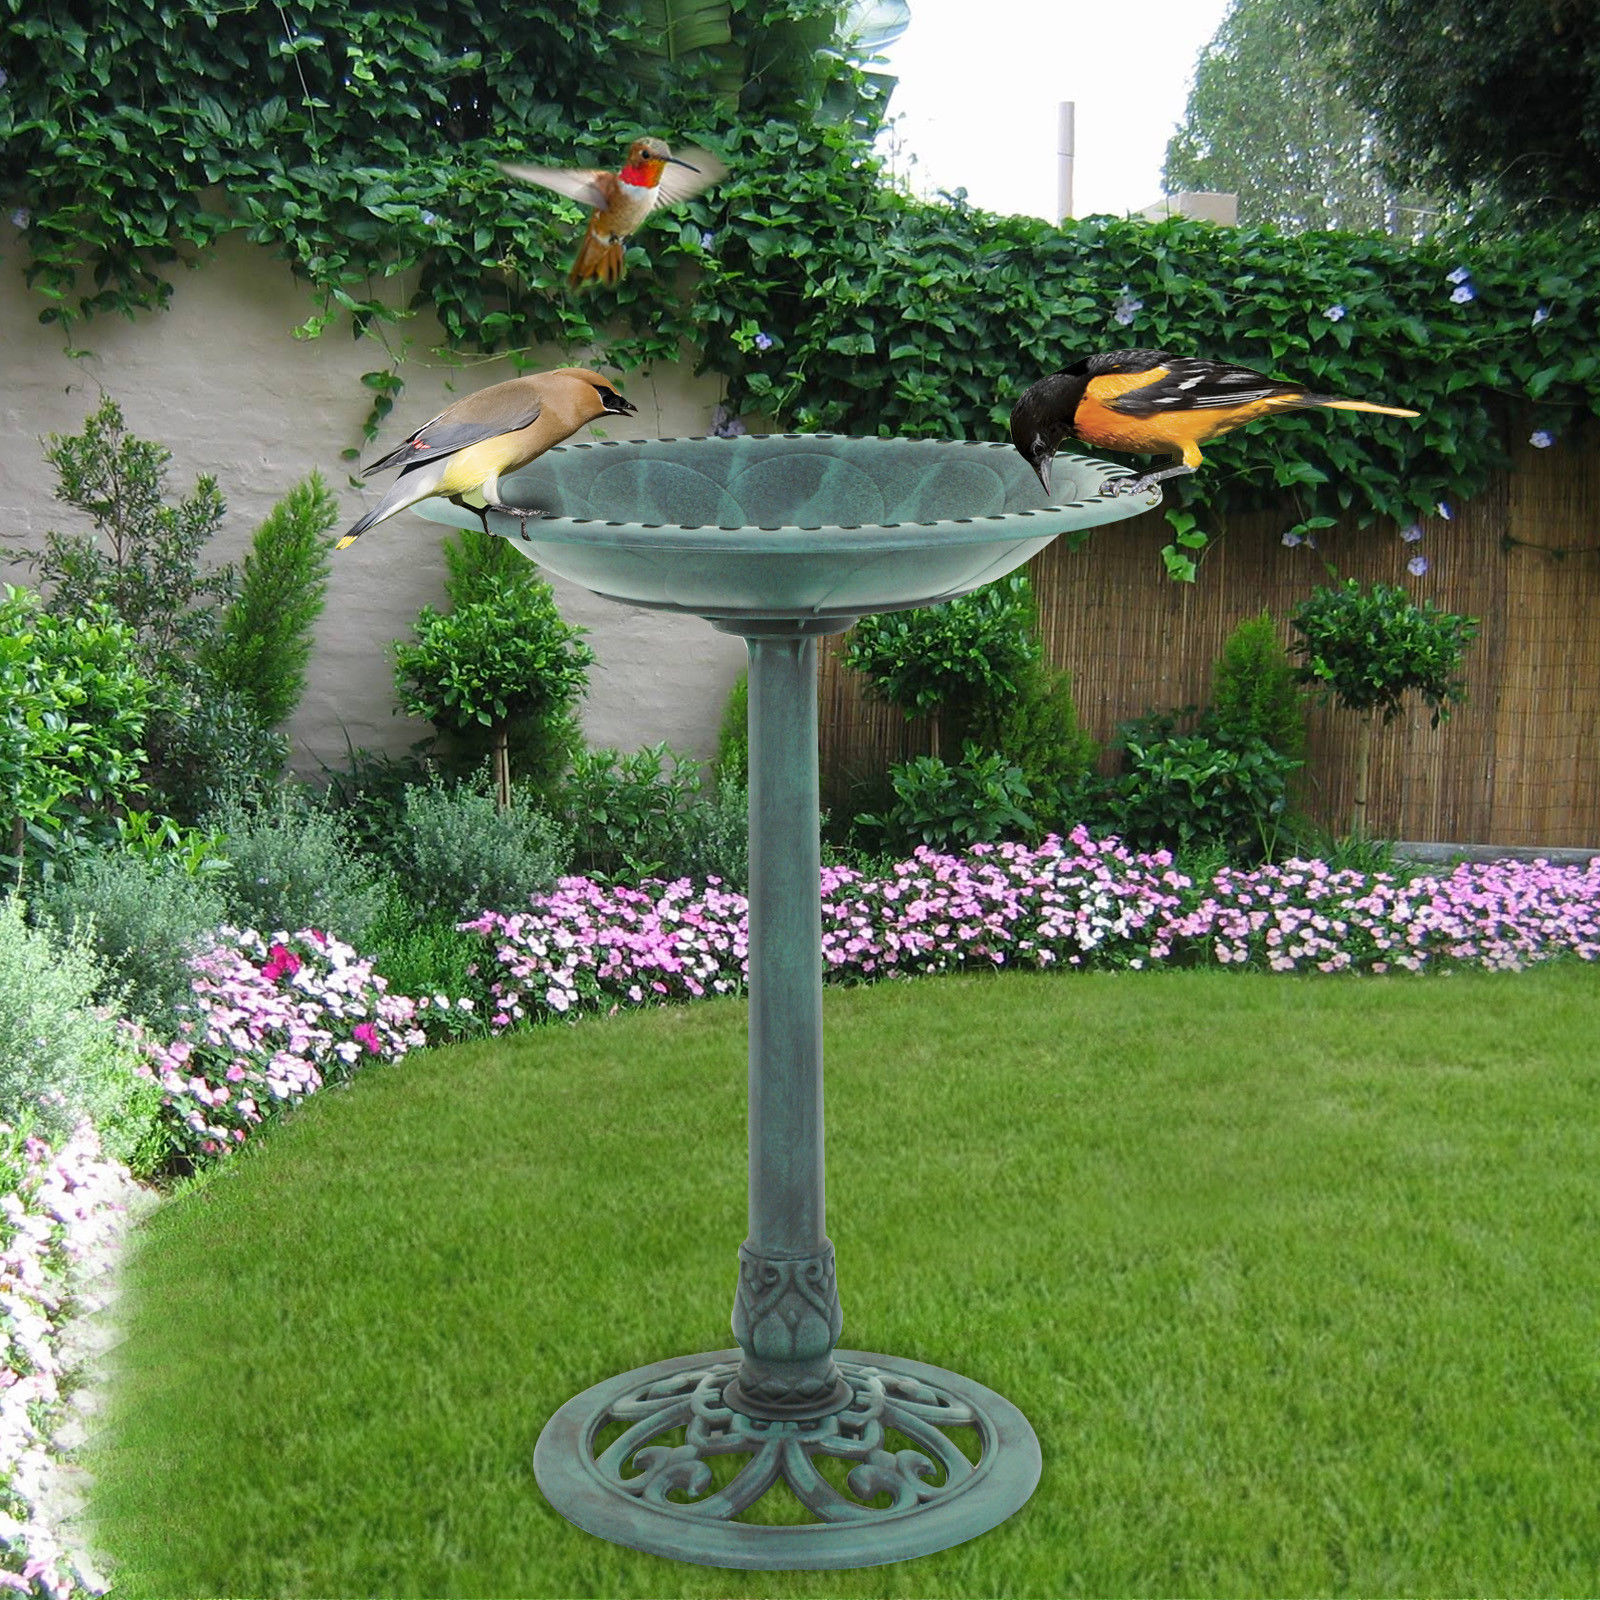 Zeny Birdbath Height Pedestal Bird Bath Outdoor Garden Decor Vintage Yard Art Verdigris Walmart Com Walmart Com